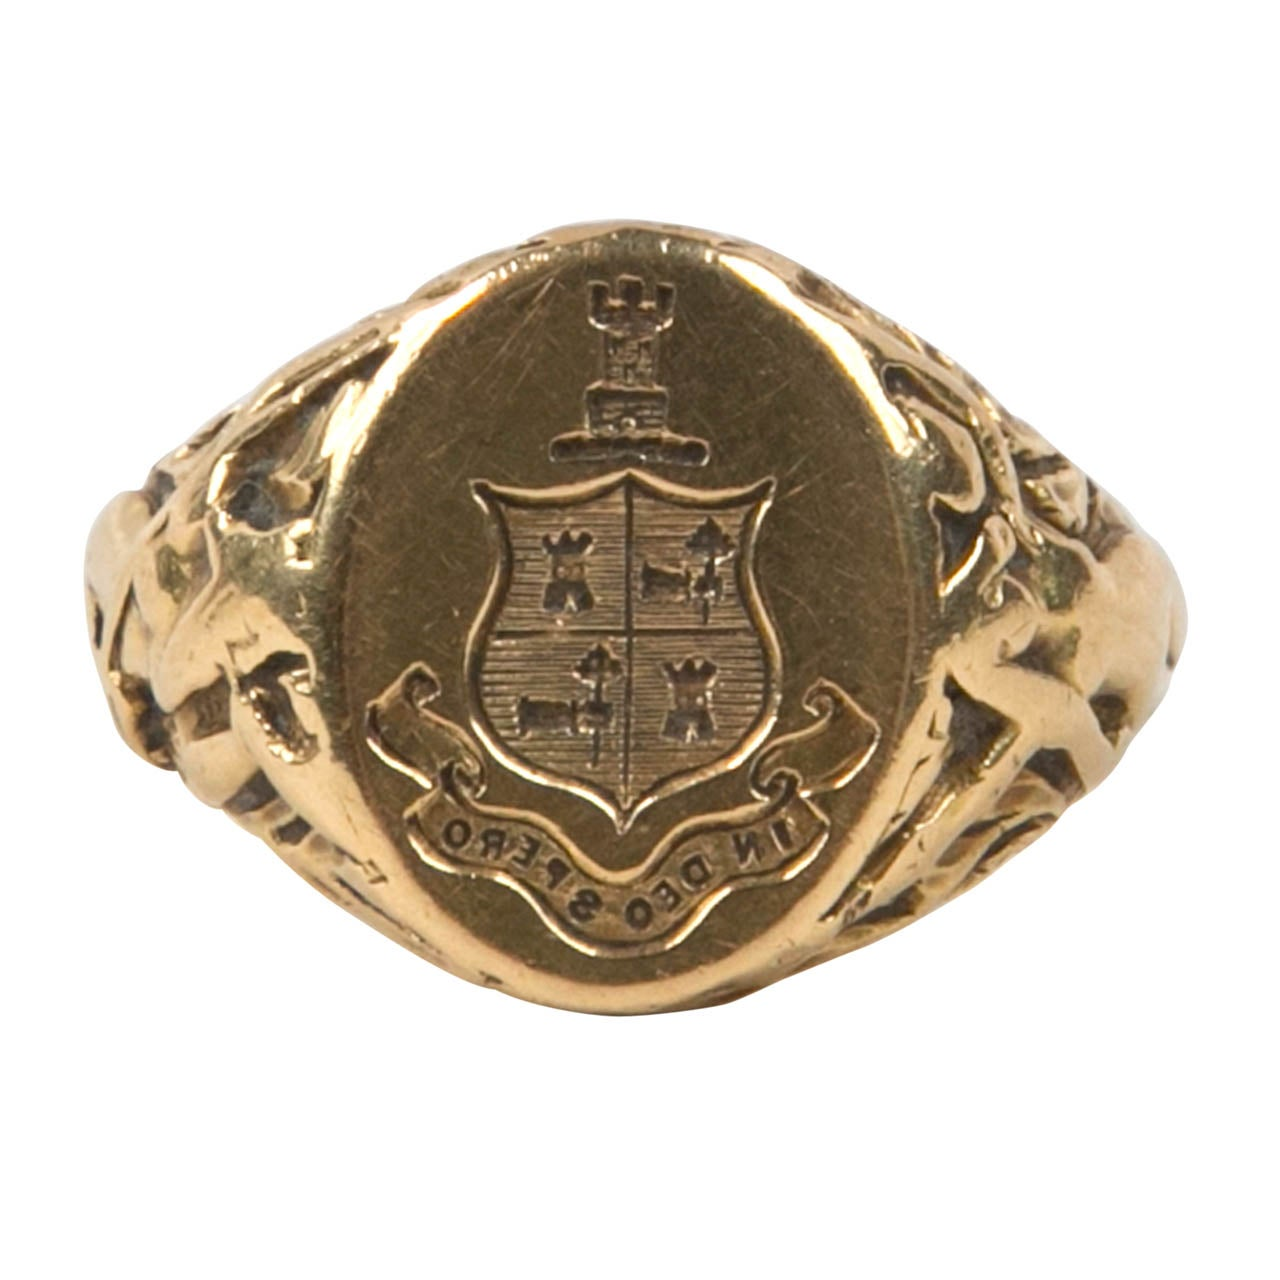 co antique gold signet ring